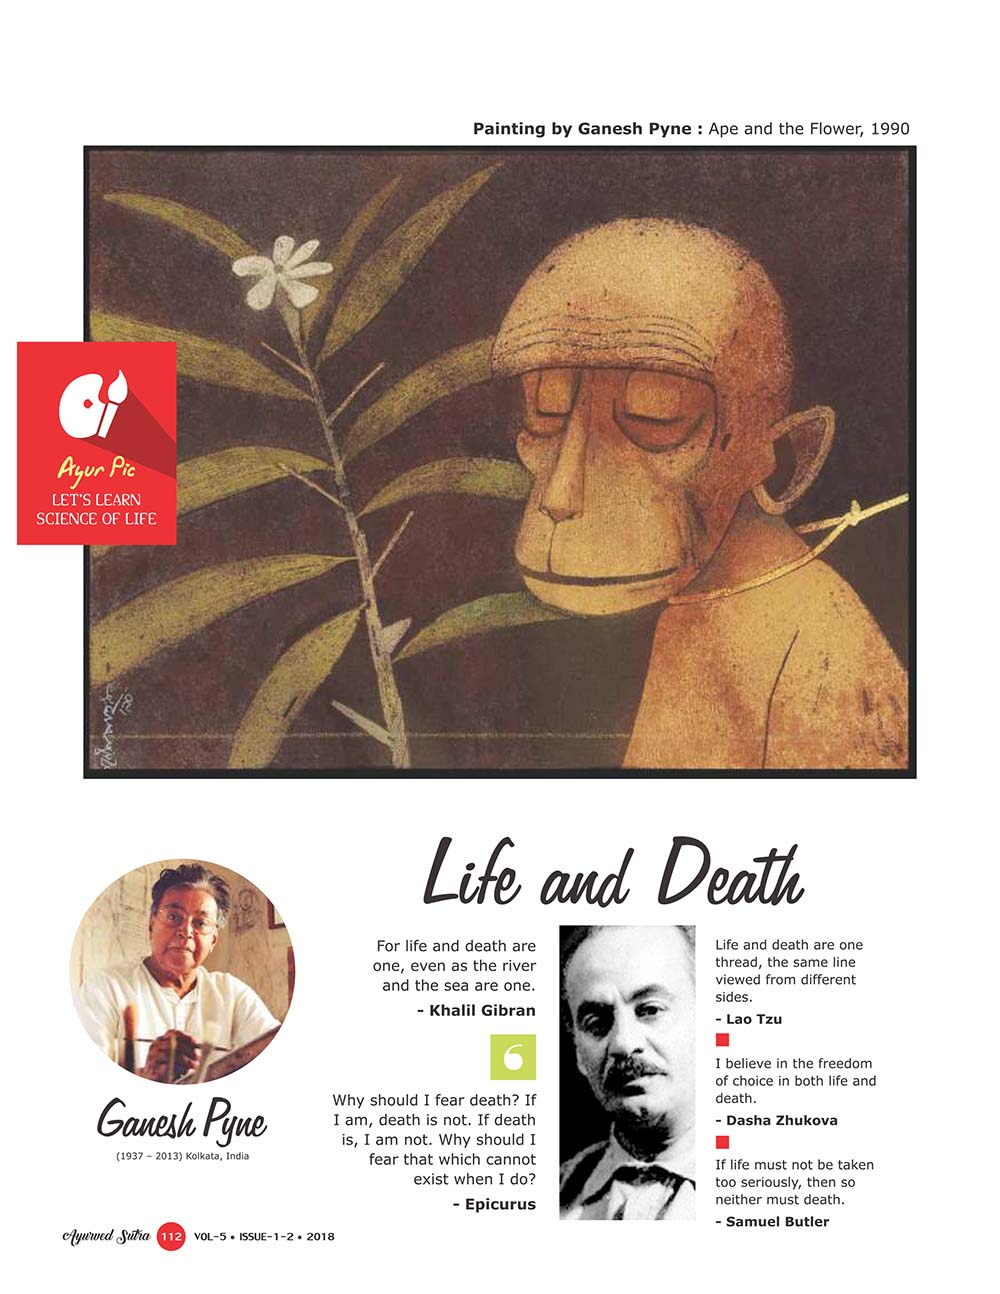 Ayurvedsutra Vol 05 issue 01 02 114 - Life and Death